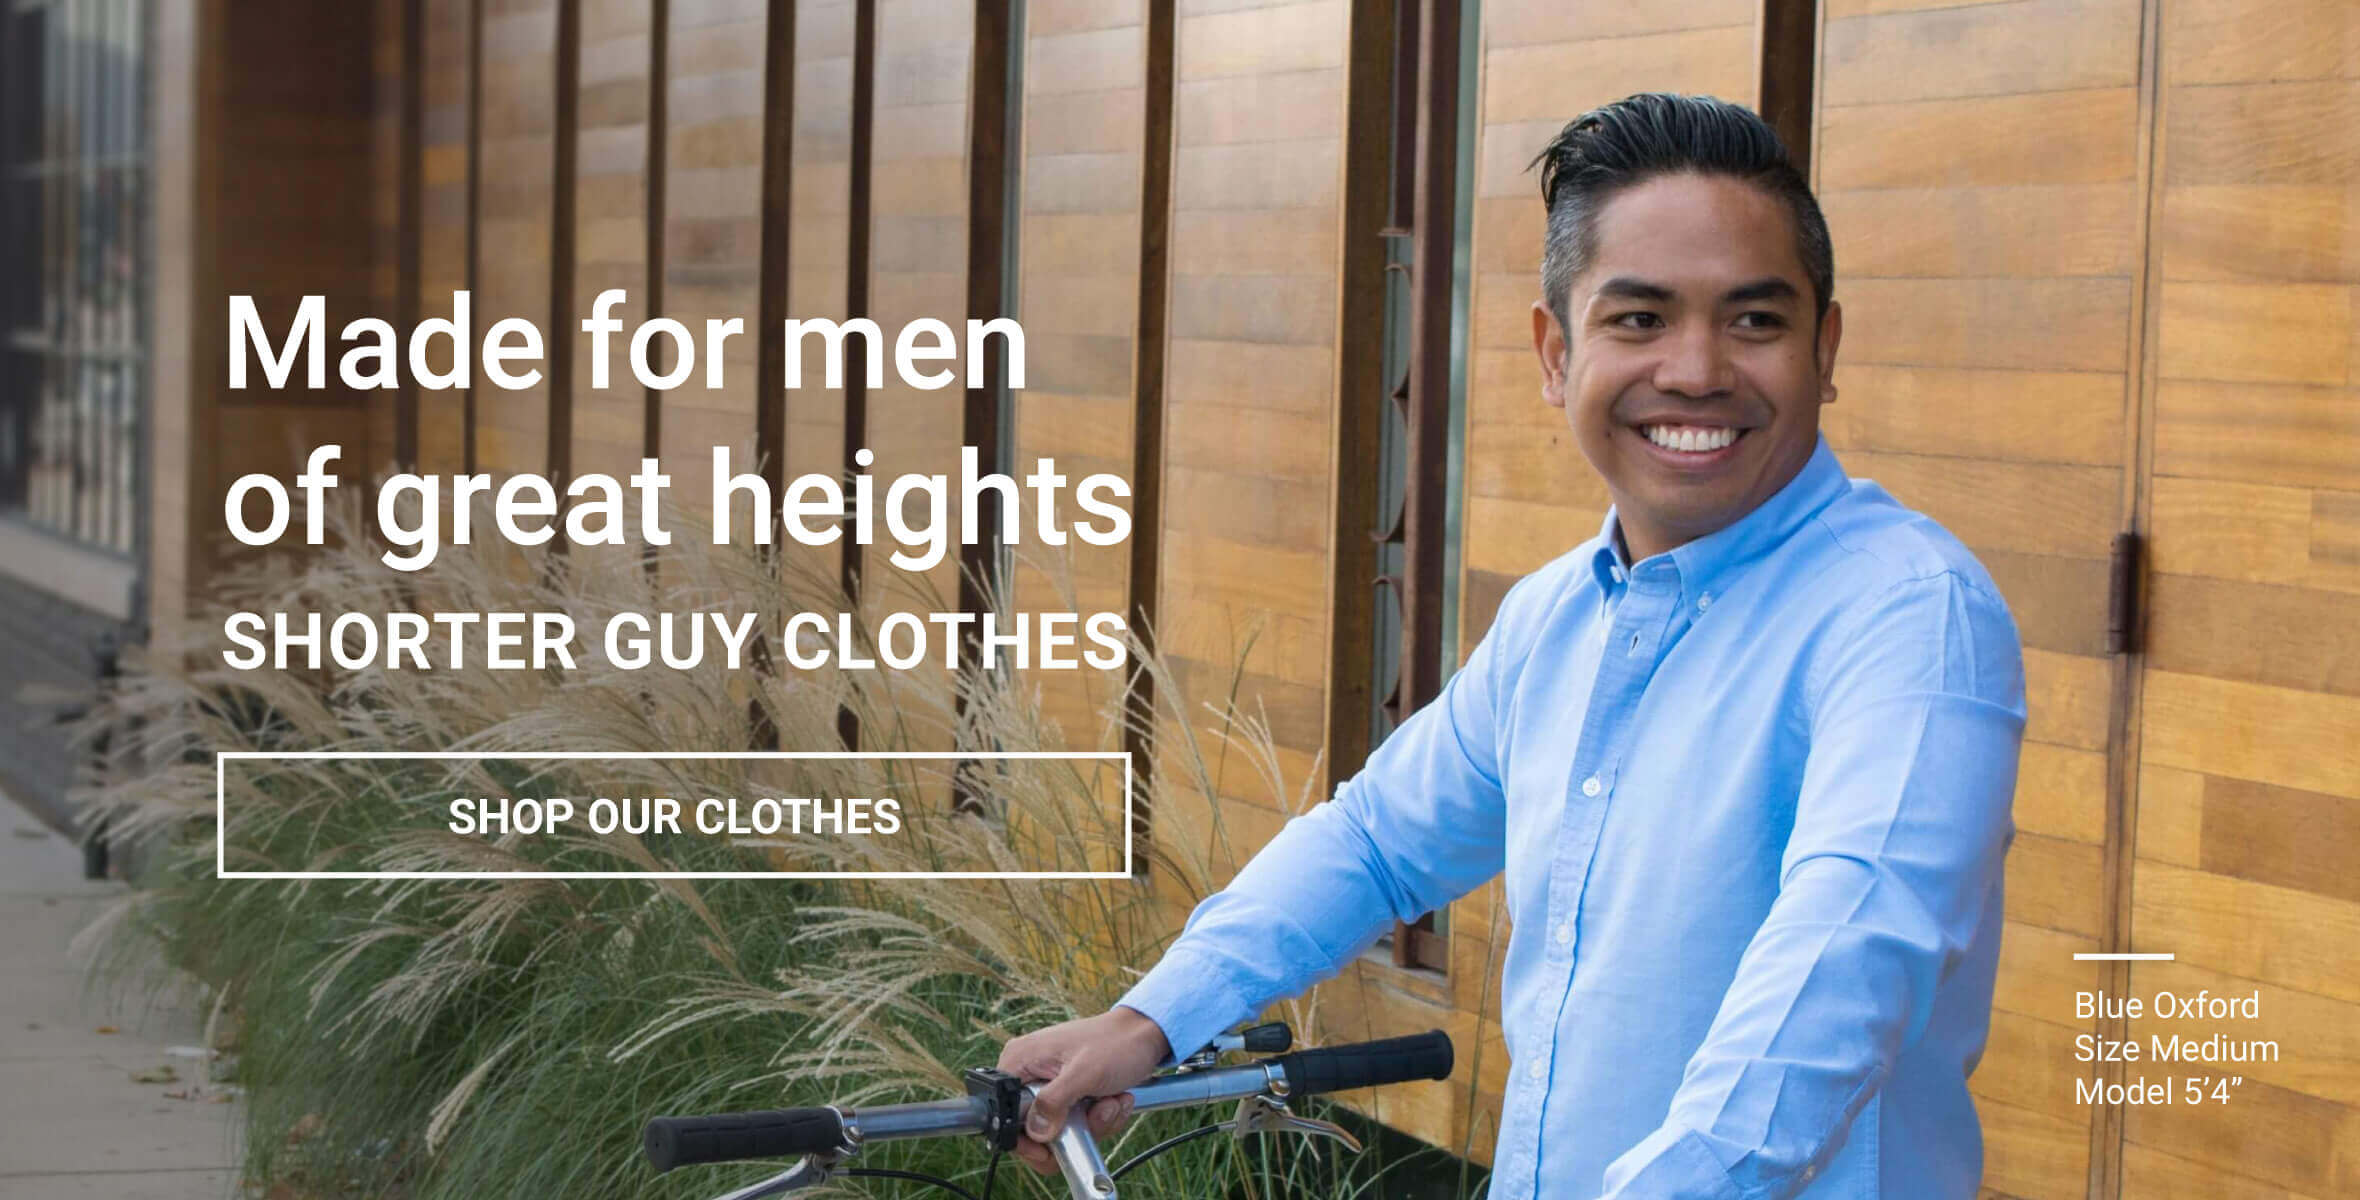 Made for men of great heights, shorter guy clothes. Shop our clothes now. As seen on Shark Tank!